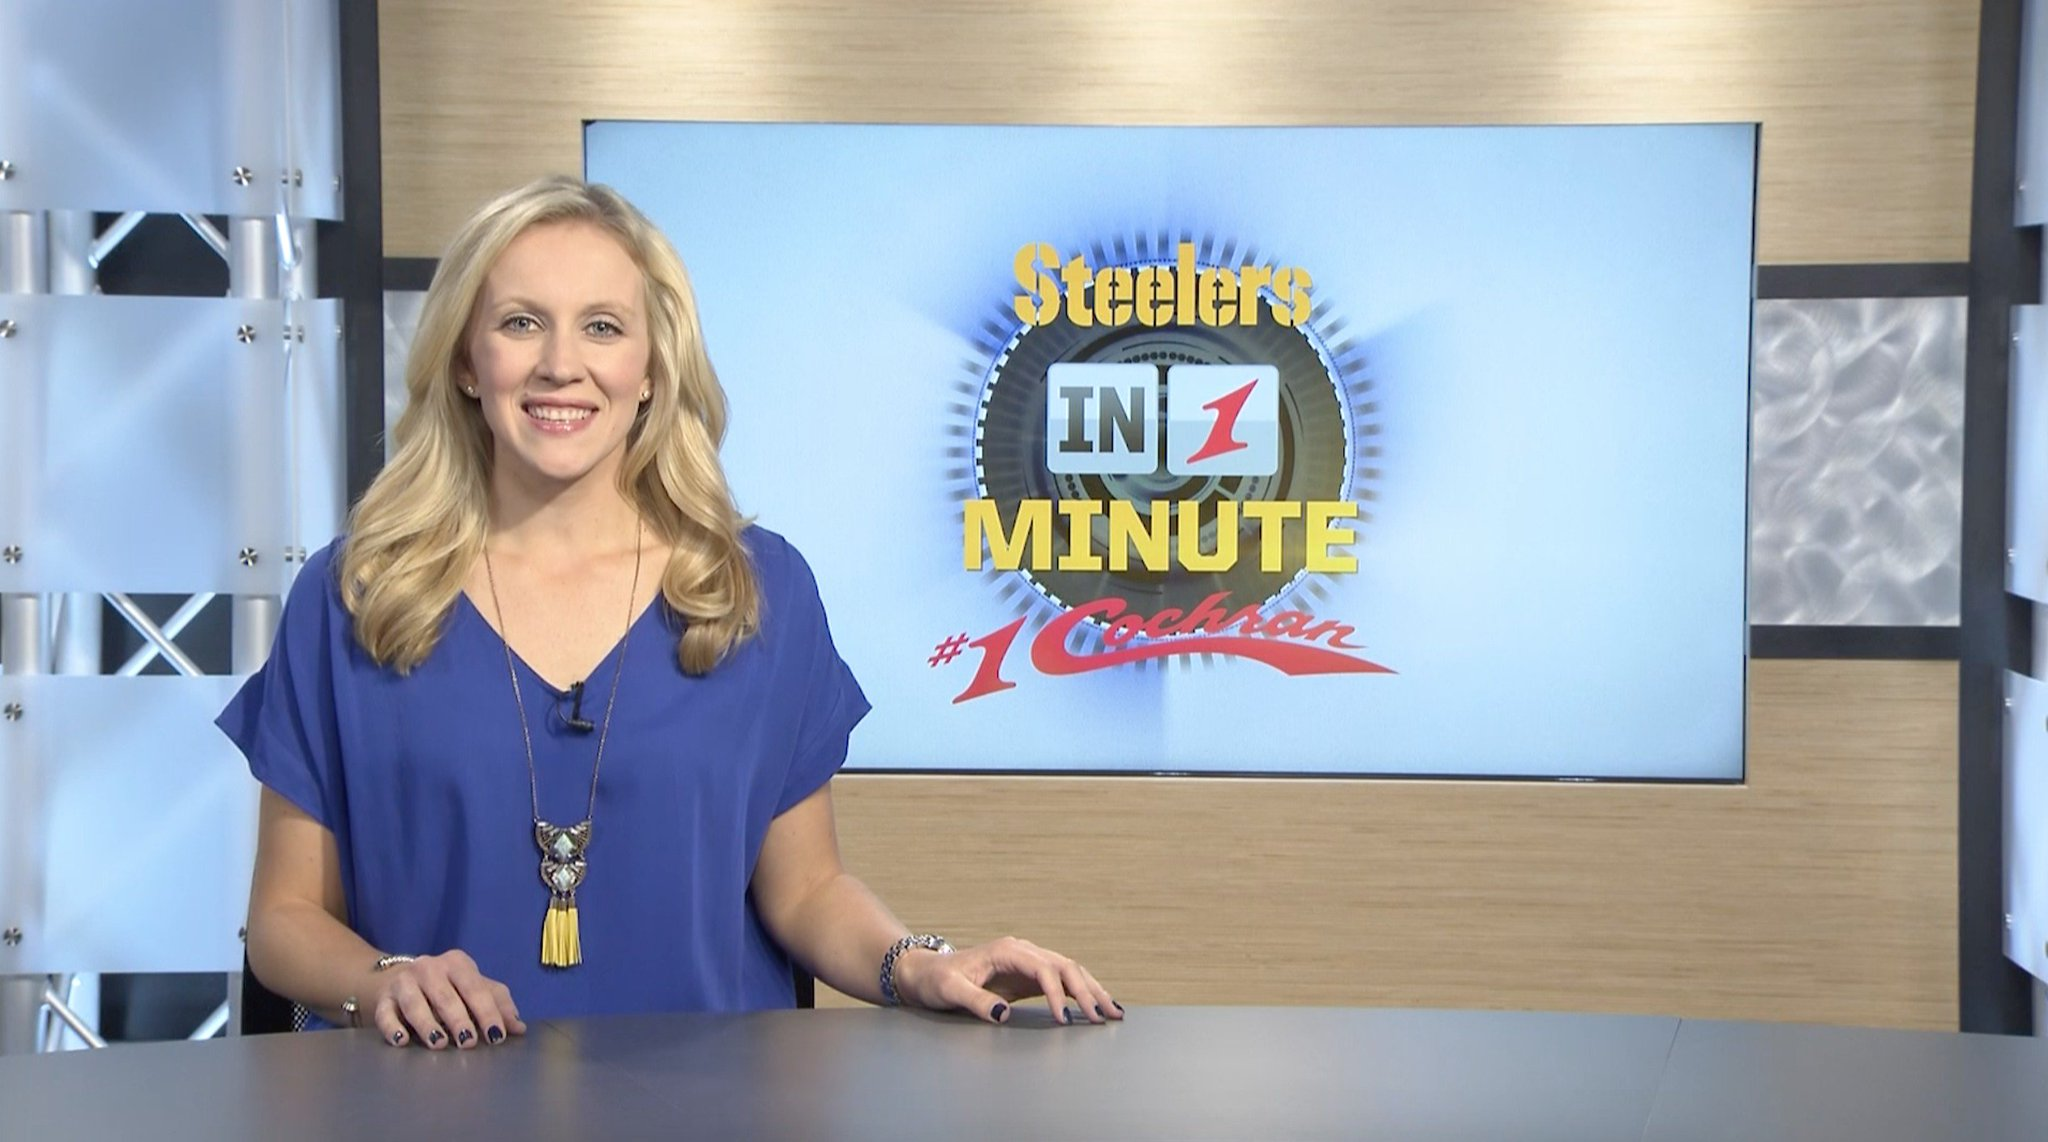 Here's everything you need to know about our win over the Browns - in 1 minute. https://t.co/BgfNXI2nHx